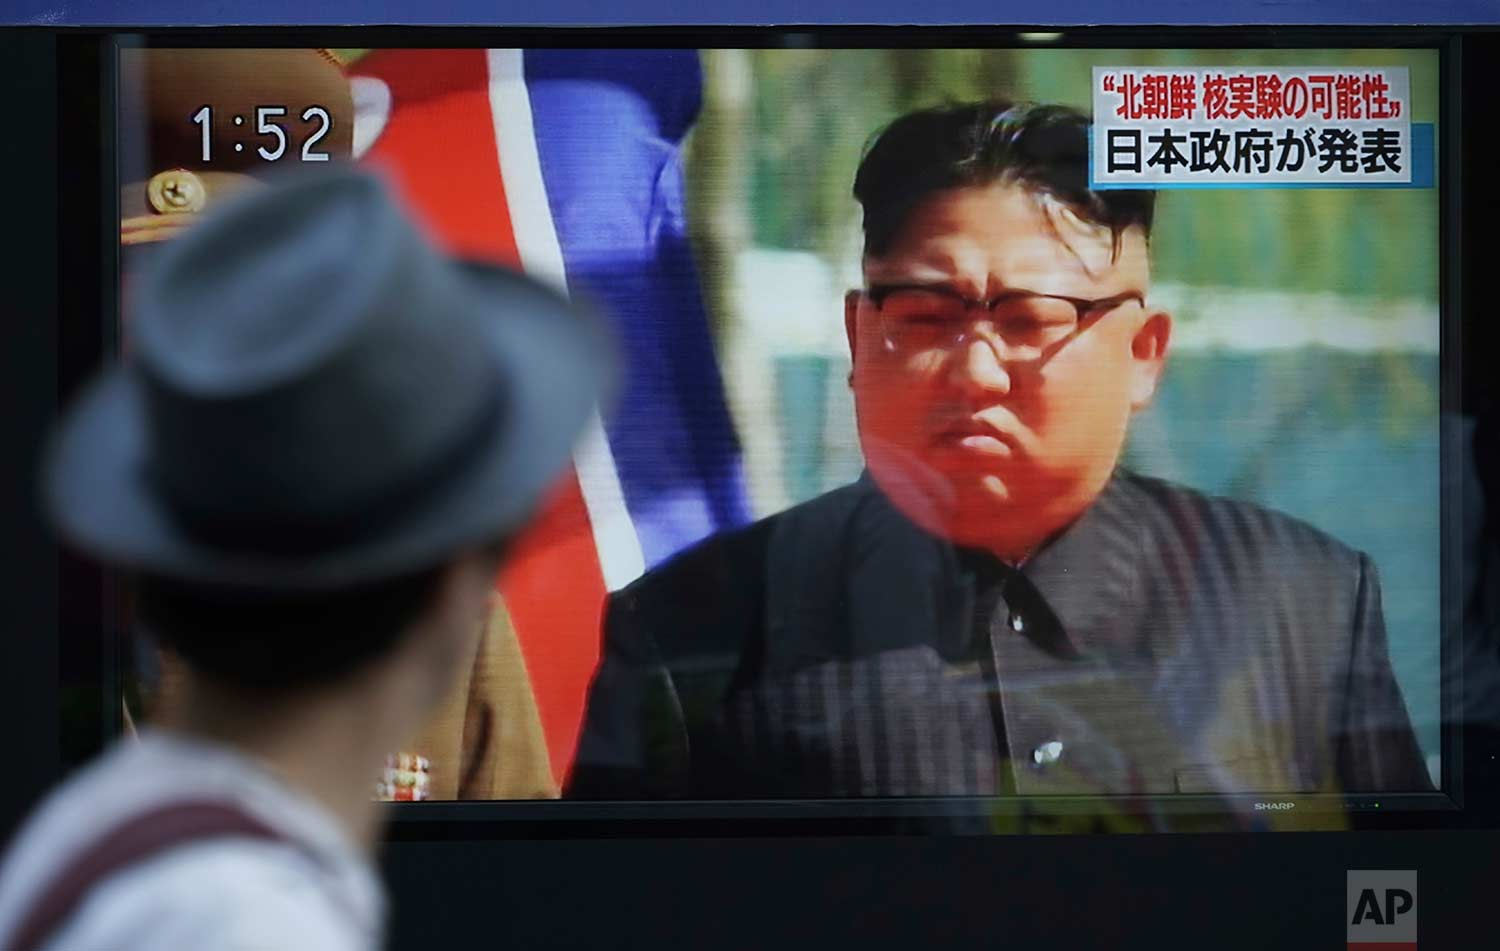 A man watches a TV news program on a public screen showing an image of North Korean leader Kim Jong Un while reporting North Korea's possible nuclear test in Tokyo Sunday, Sept. 3, 2017. South Korea's military said Sunday that North Korea is believed to have conducted its sixth nuclear test after it detected a strong earthquake, hours after Pyongyang claimed that its leader has inspected a hydrogen bomb meant for a new intercontinental ballistic missile. (AP Photo/Eugene Hoshiko)